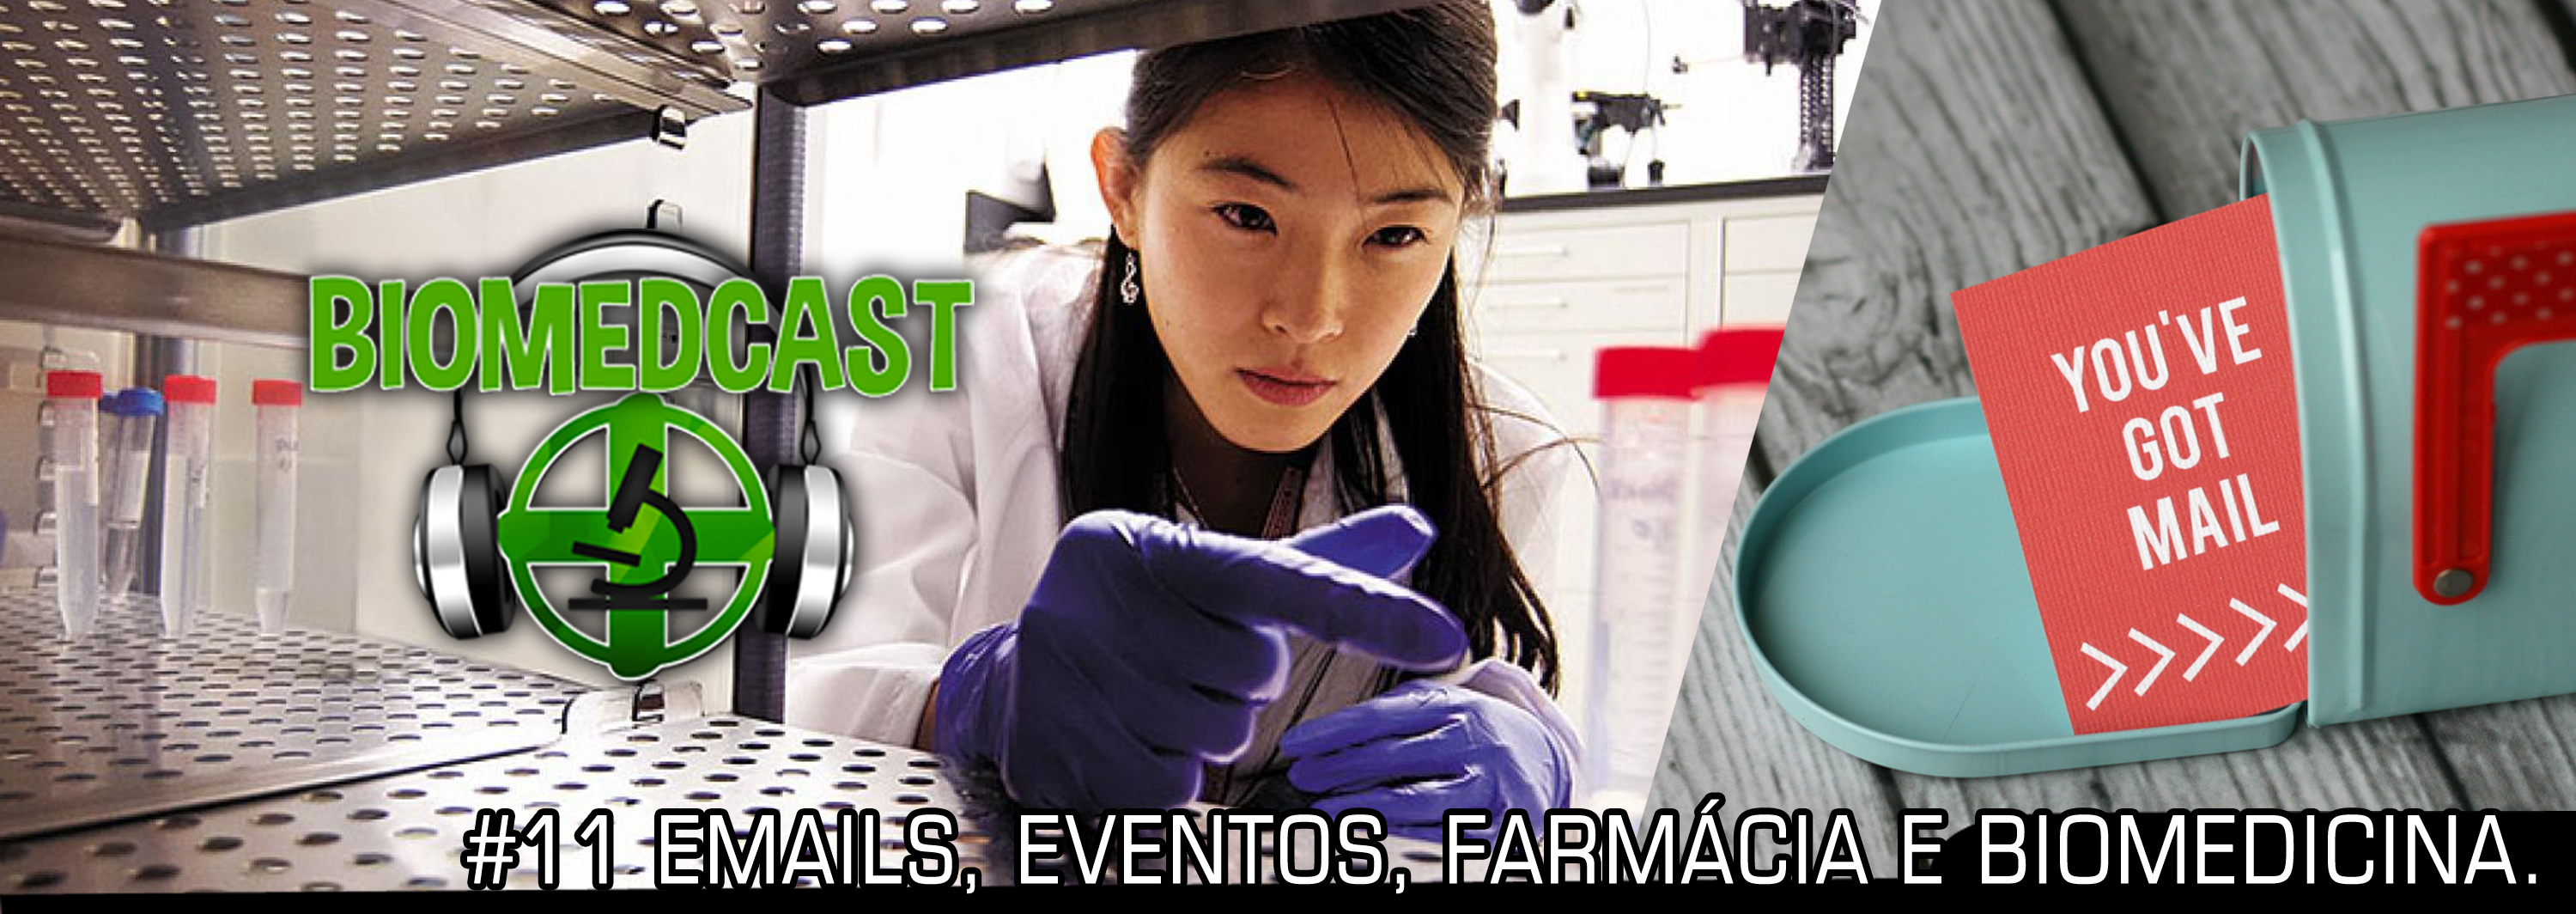 #11 Emails, Eventos, Farmácia e Biomedicina